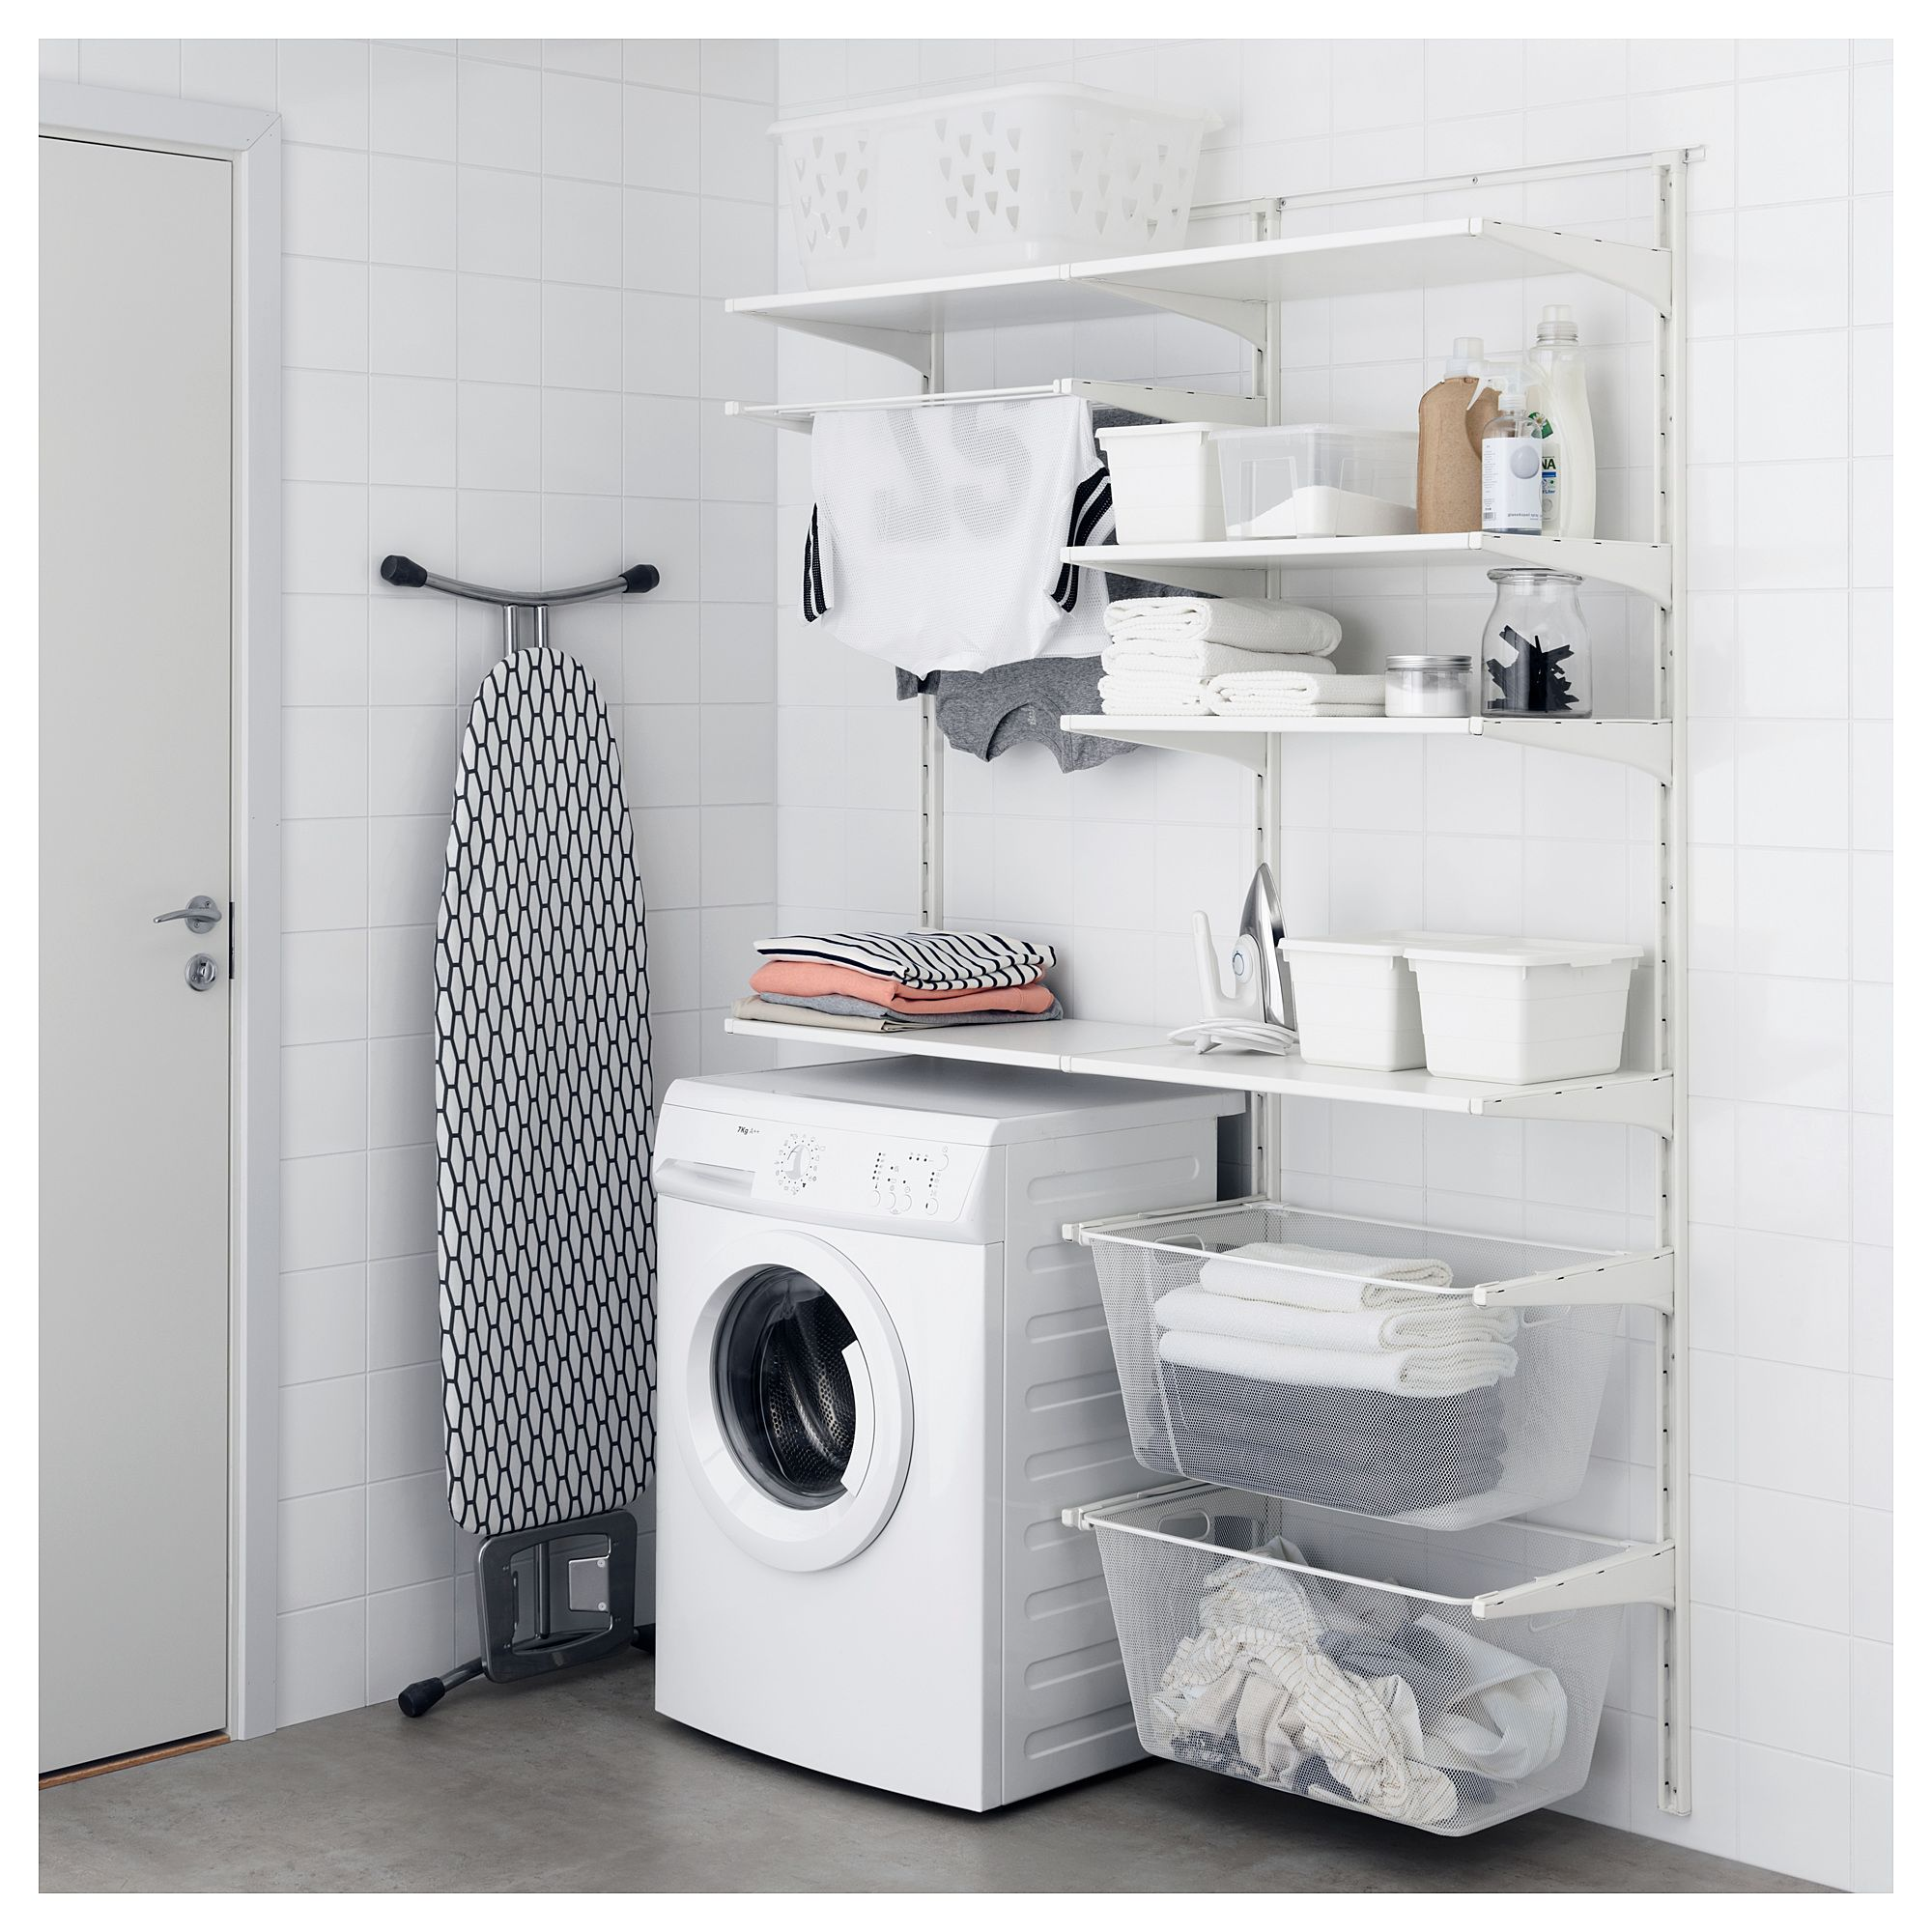 Furniture and Home Furnishings Laundry room layouts